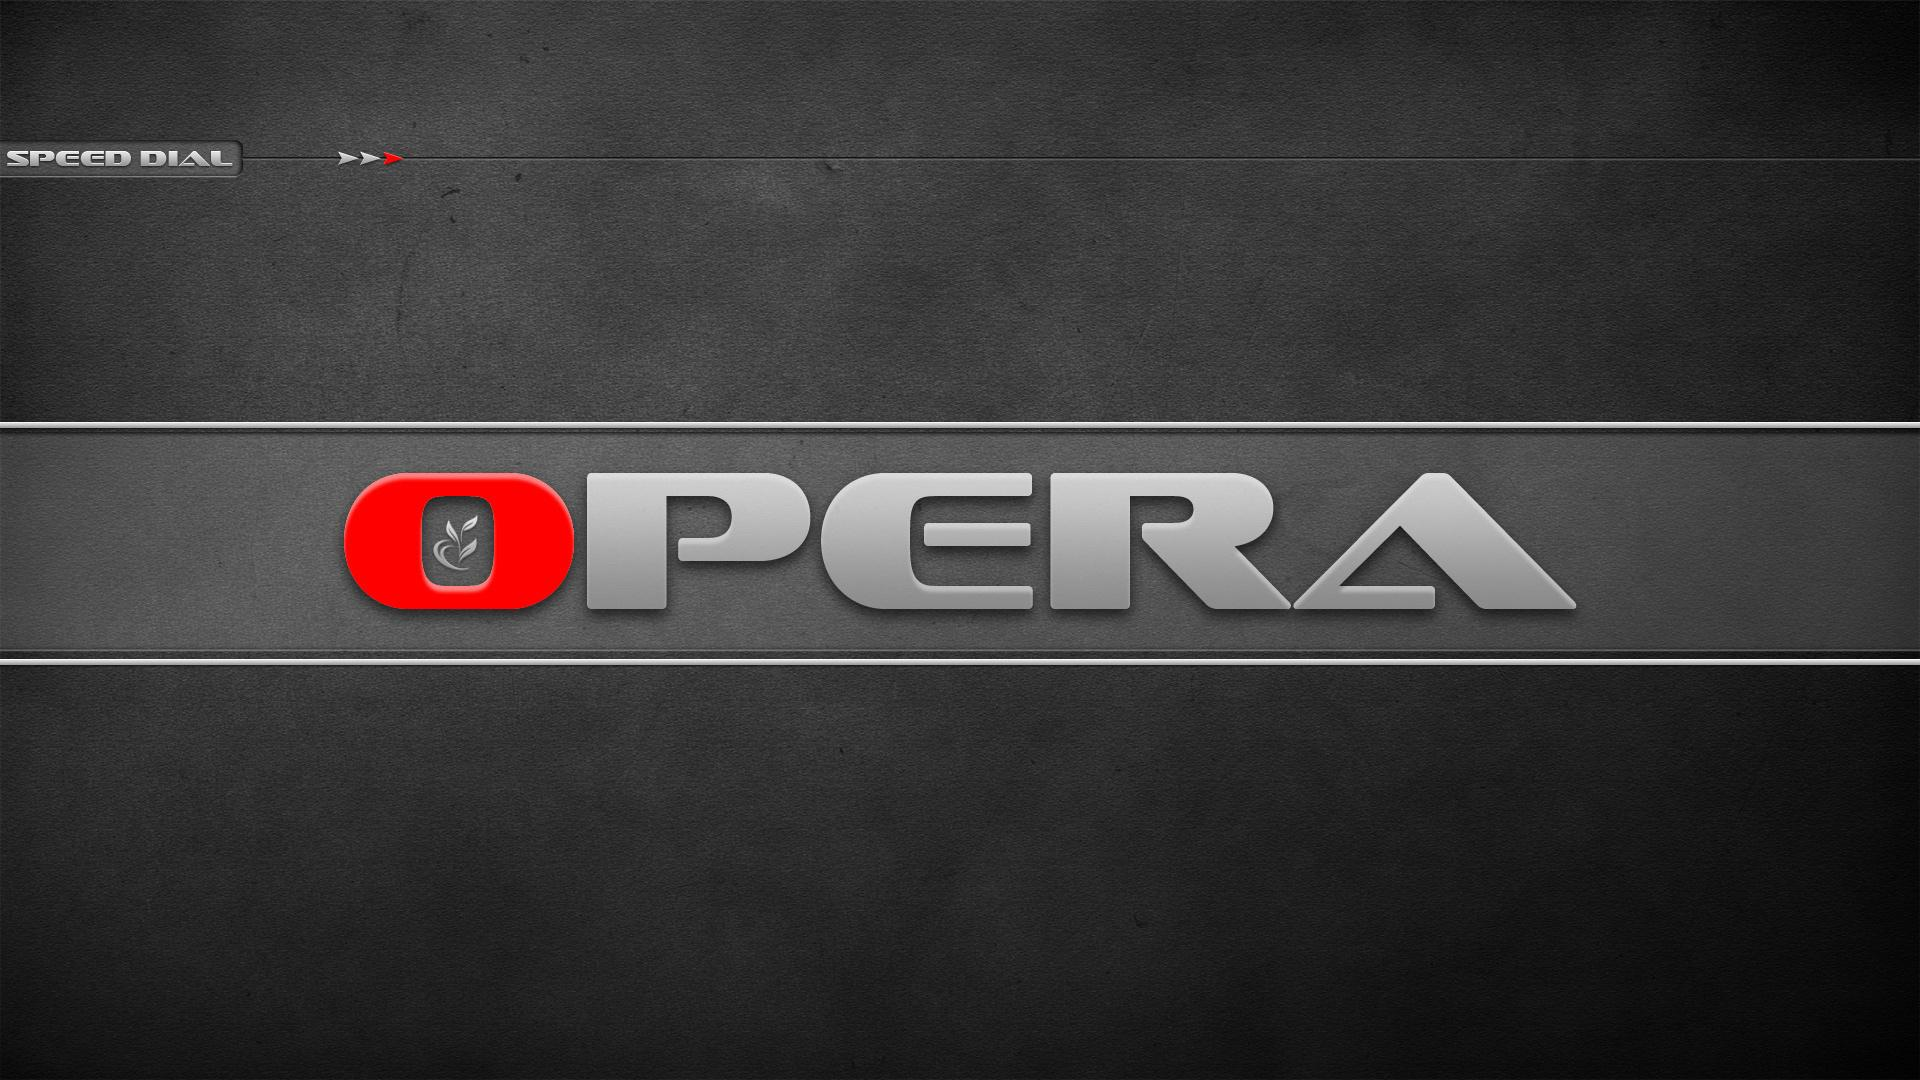 Opera wallpapers HD quality